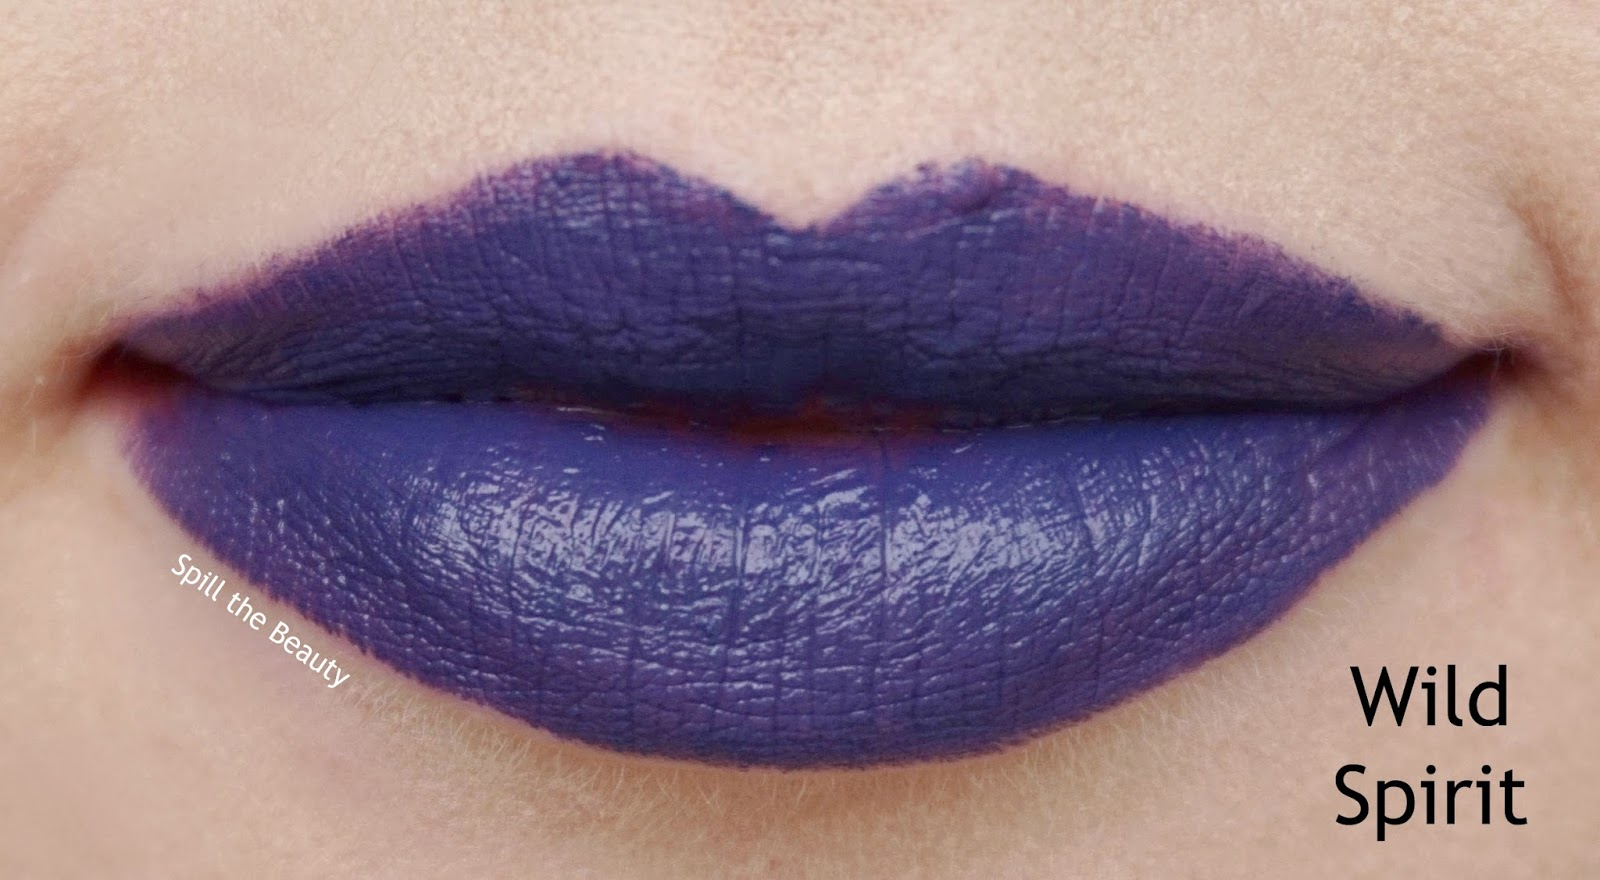 nyx pin up pout lipstick review swatches wild spirit